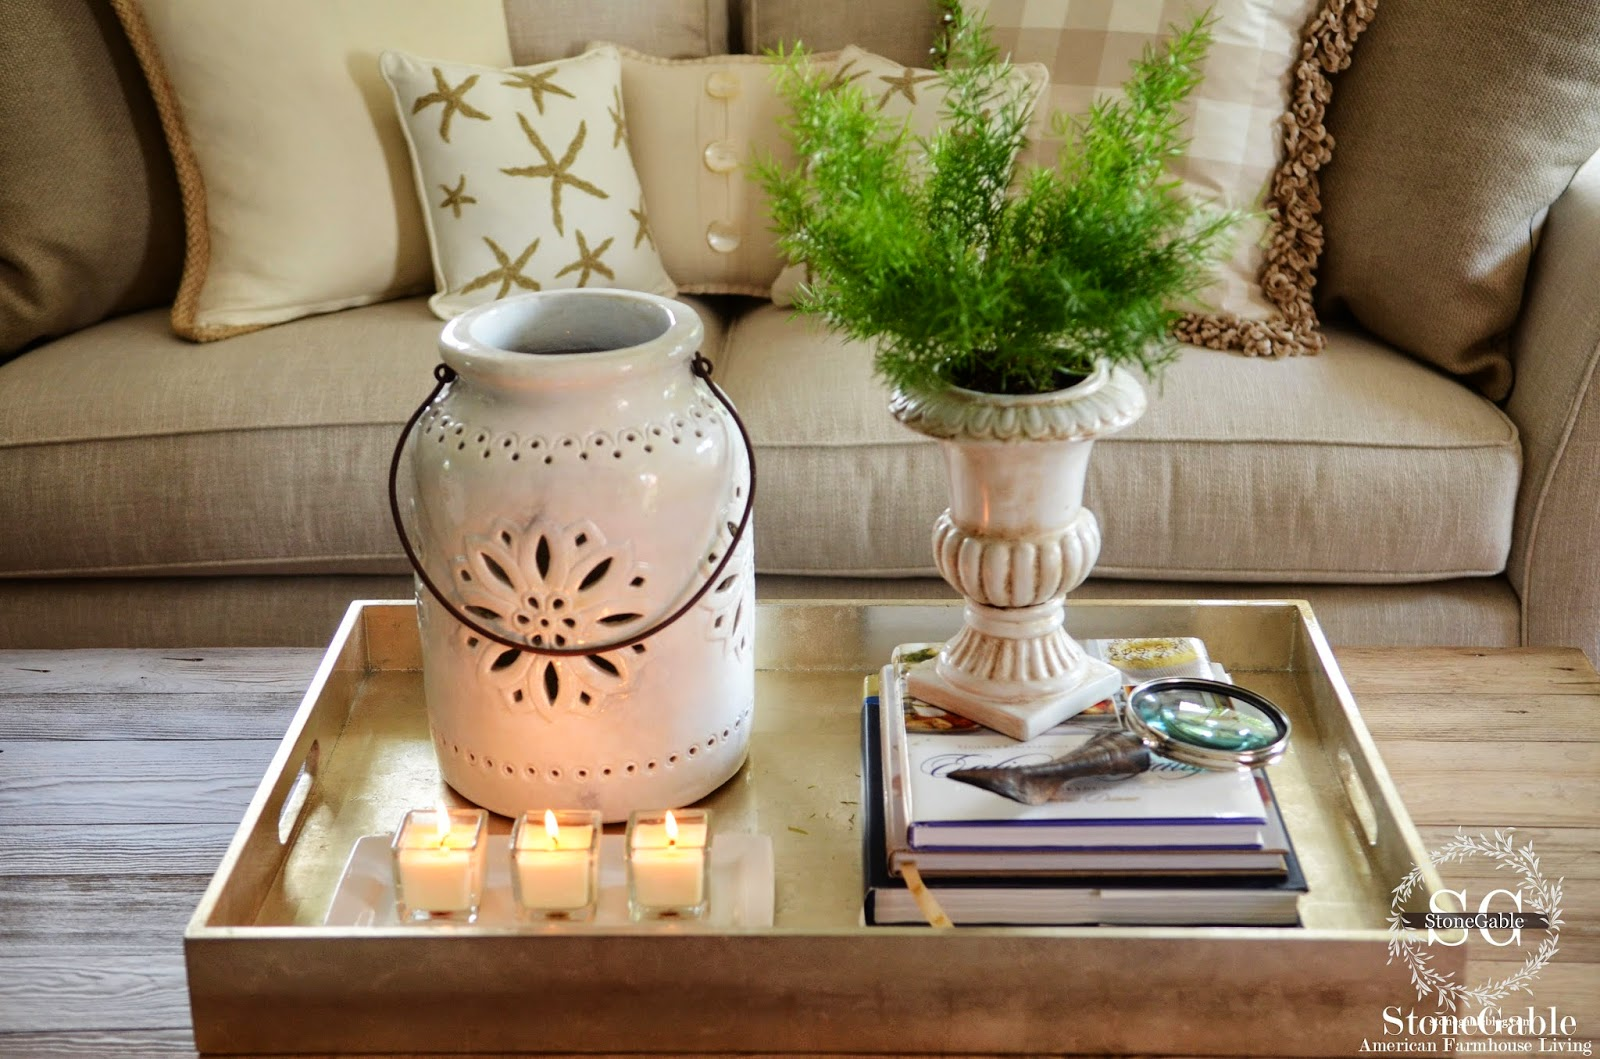 the candles fill up the tray without it looking crowded - Coffee Table Decor